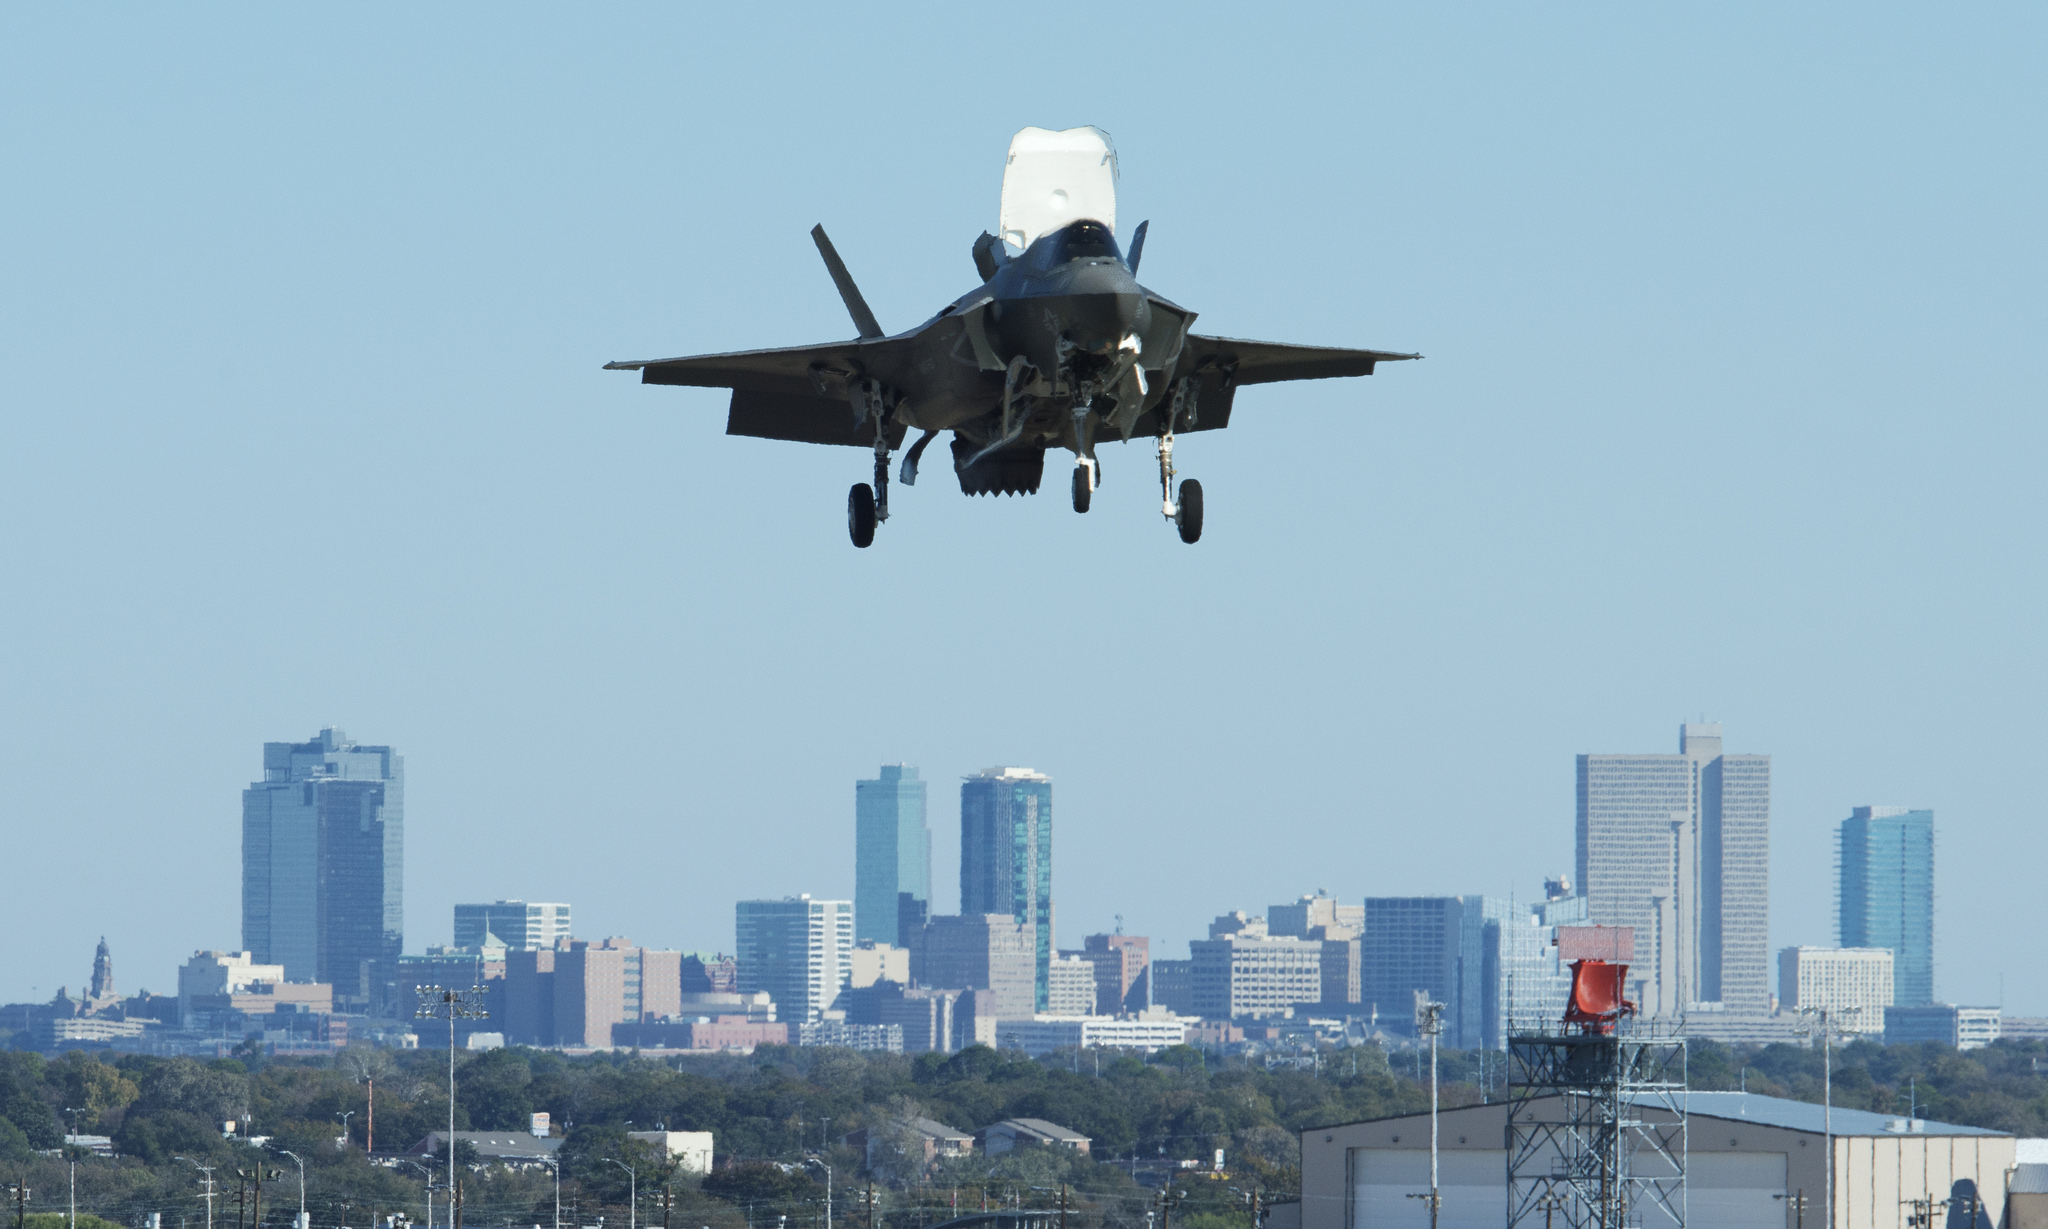 Marine F-35s grounded due to software concerns